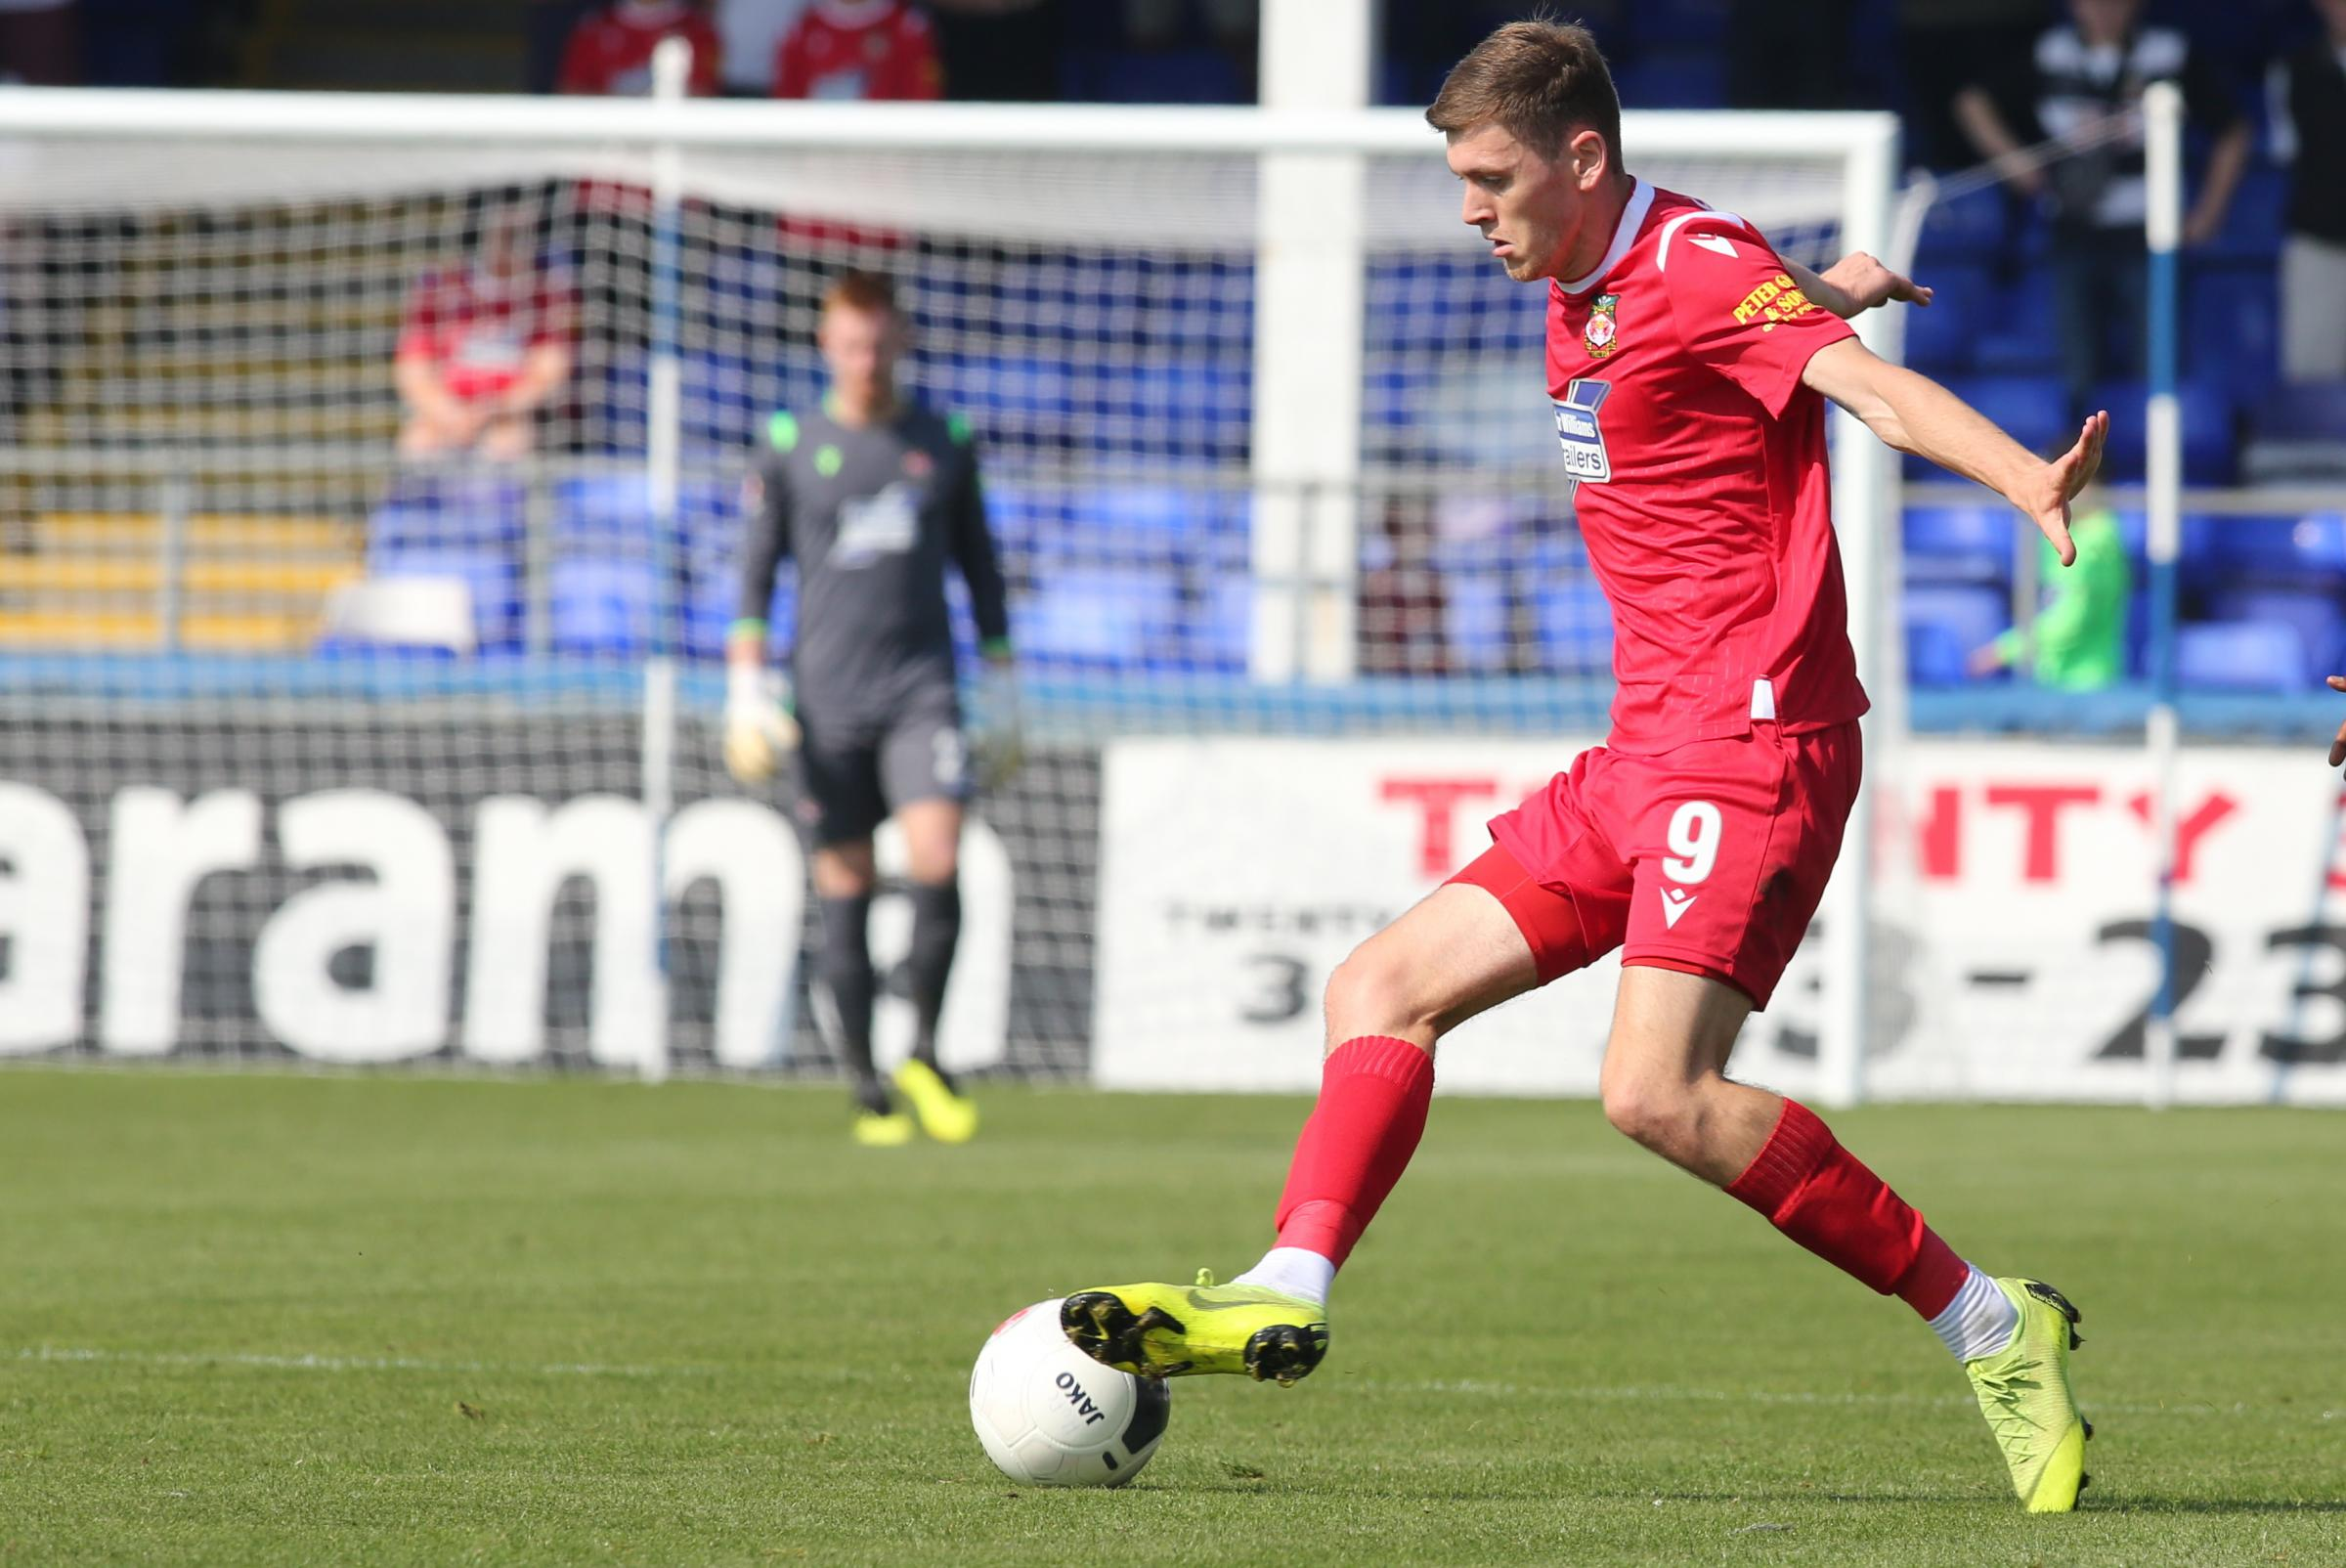 There's more to come from Ben Tollitt after winger extends loan spell at Wrexham AFC